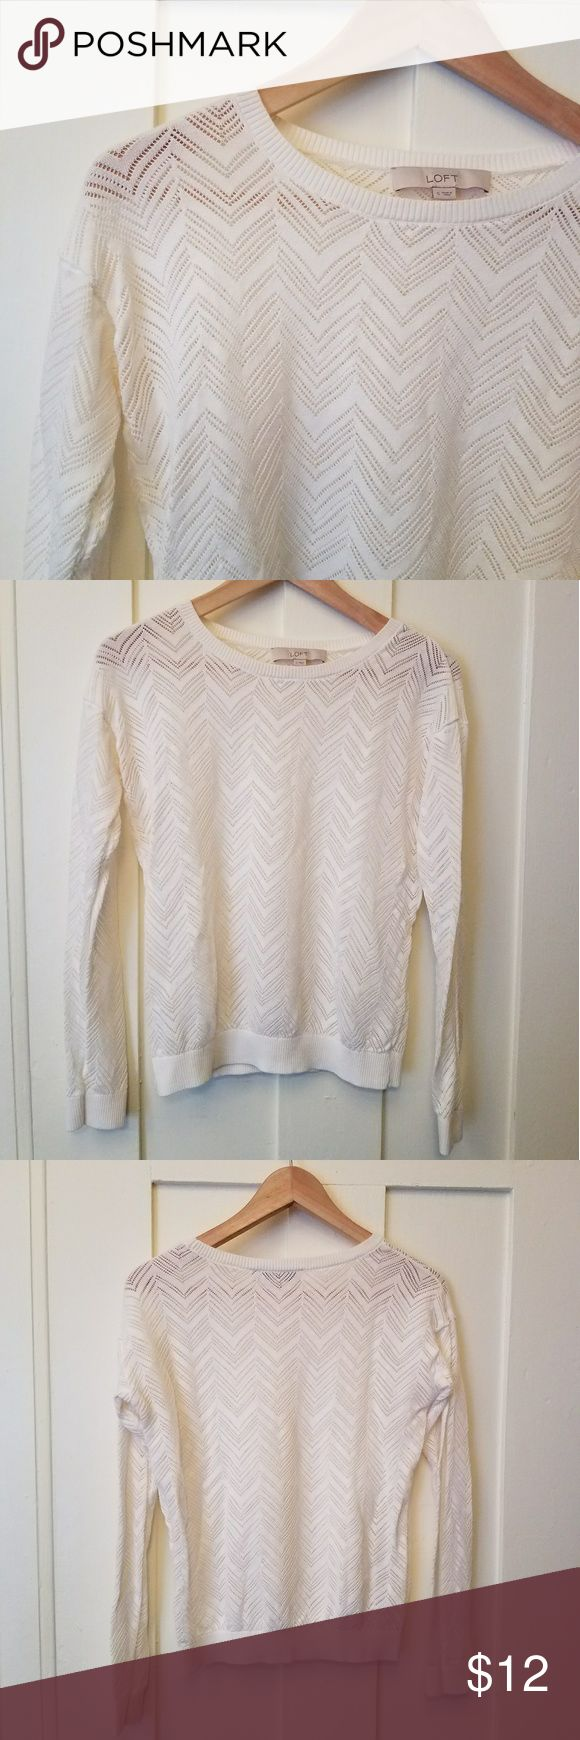 Loft chevron top Lightweight sweater type material in a cool chevron pattern. Perfect for spring and late summer. Size small, in good used condition. No obvious flaws other than the inside body tag being carefully cut out.  This top is also included as part of a bundle of 4 b&w LOFT sweaters in my closet. Take a look, make an offer! LOFT Tops